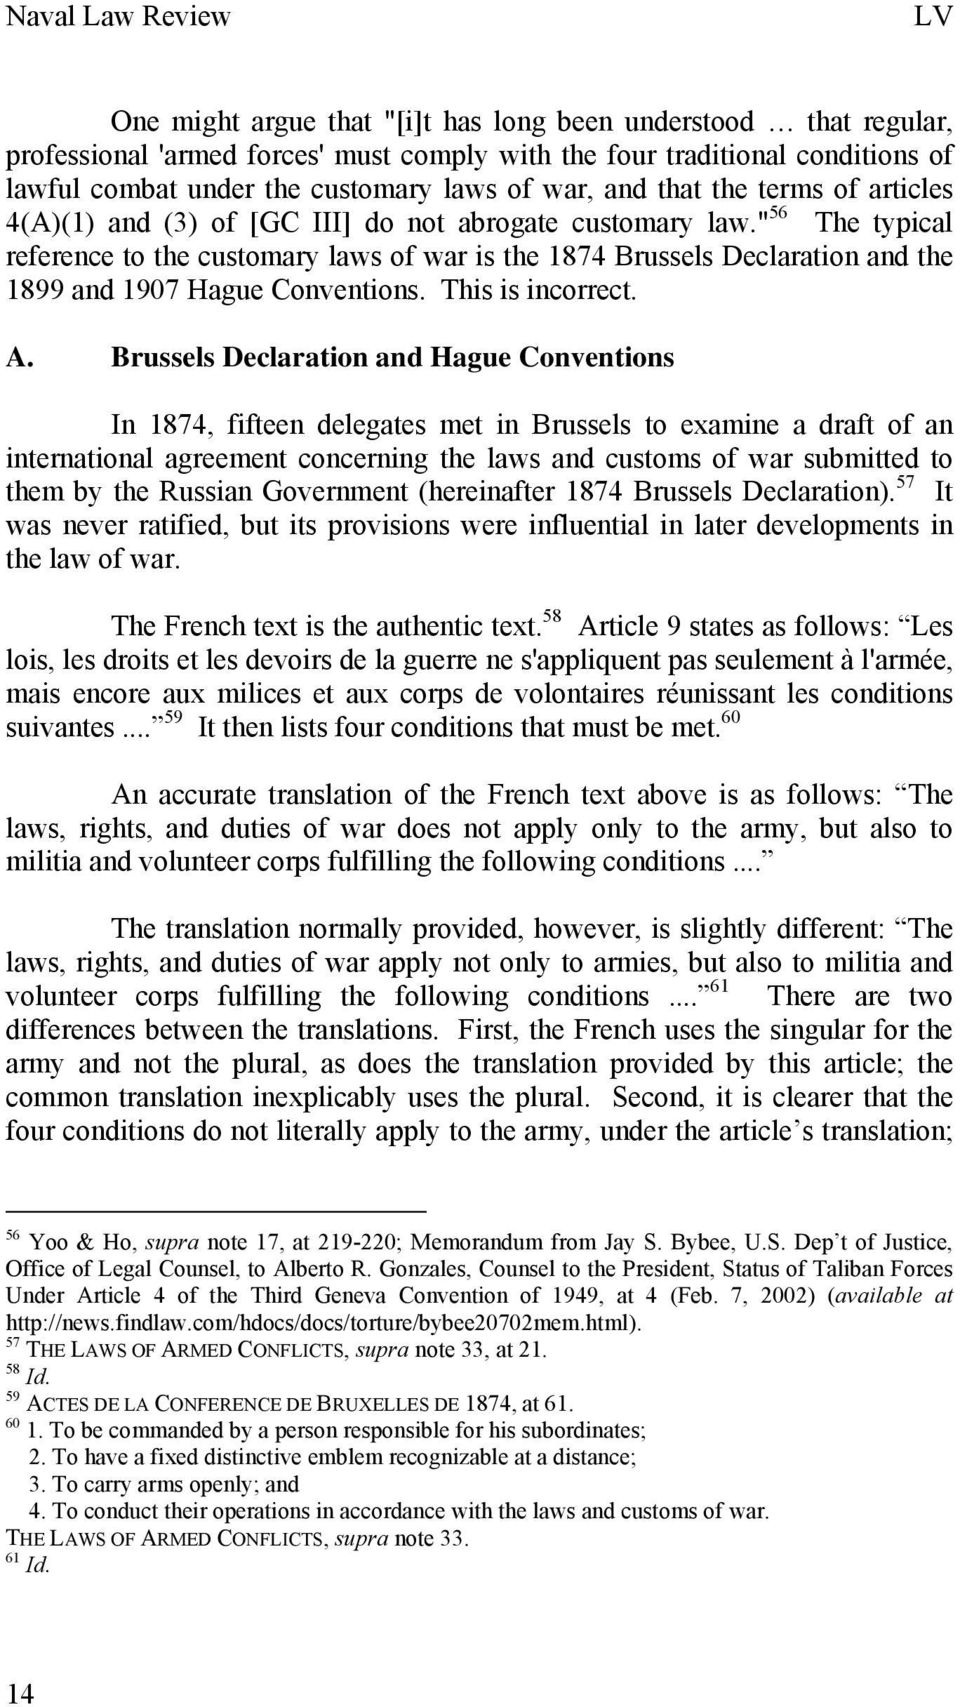 """ 56 The typical reference to the customary laws of war is the 1874 Brussels Declaration and the 1899 and 1907 Hague Conventions. This is incorrect. A."